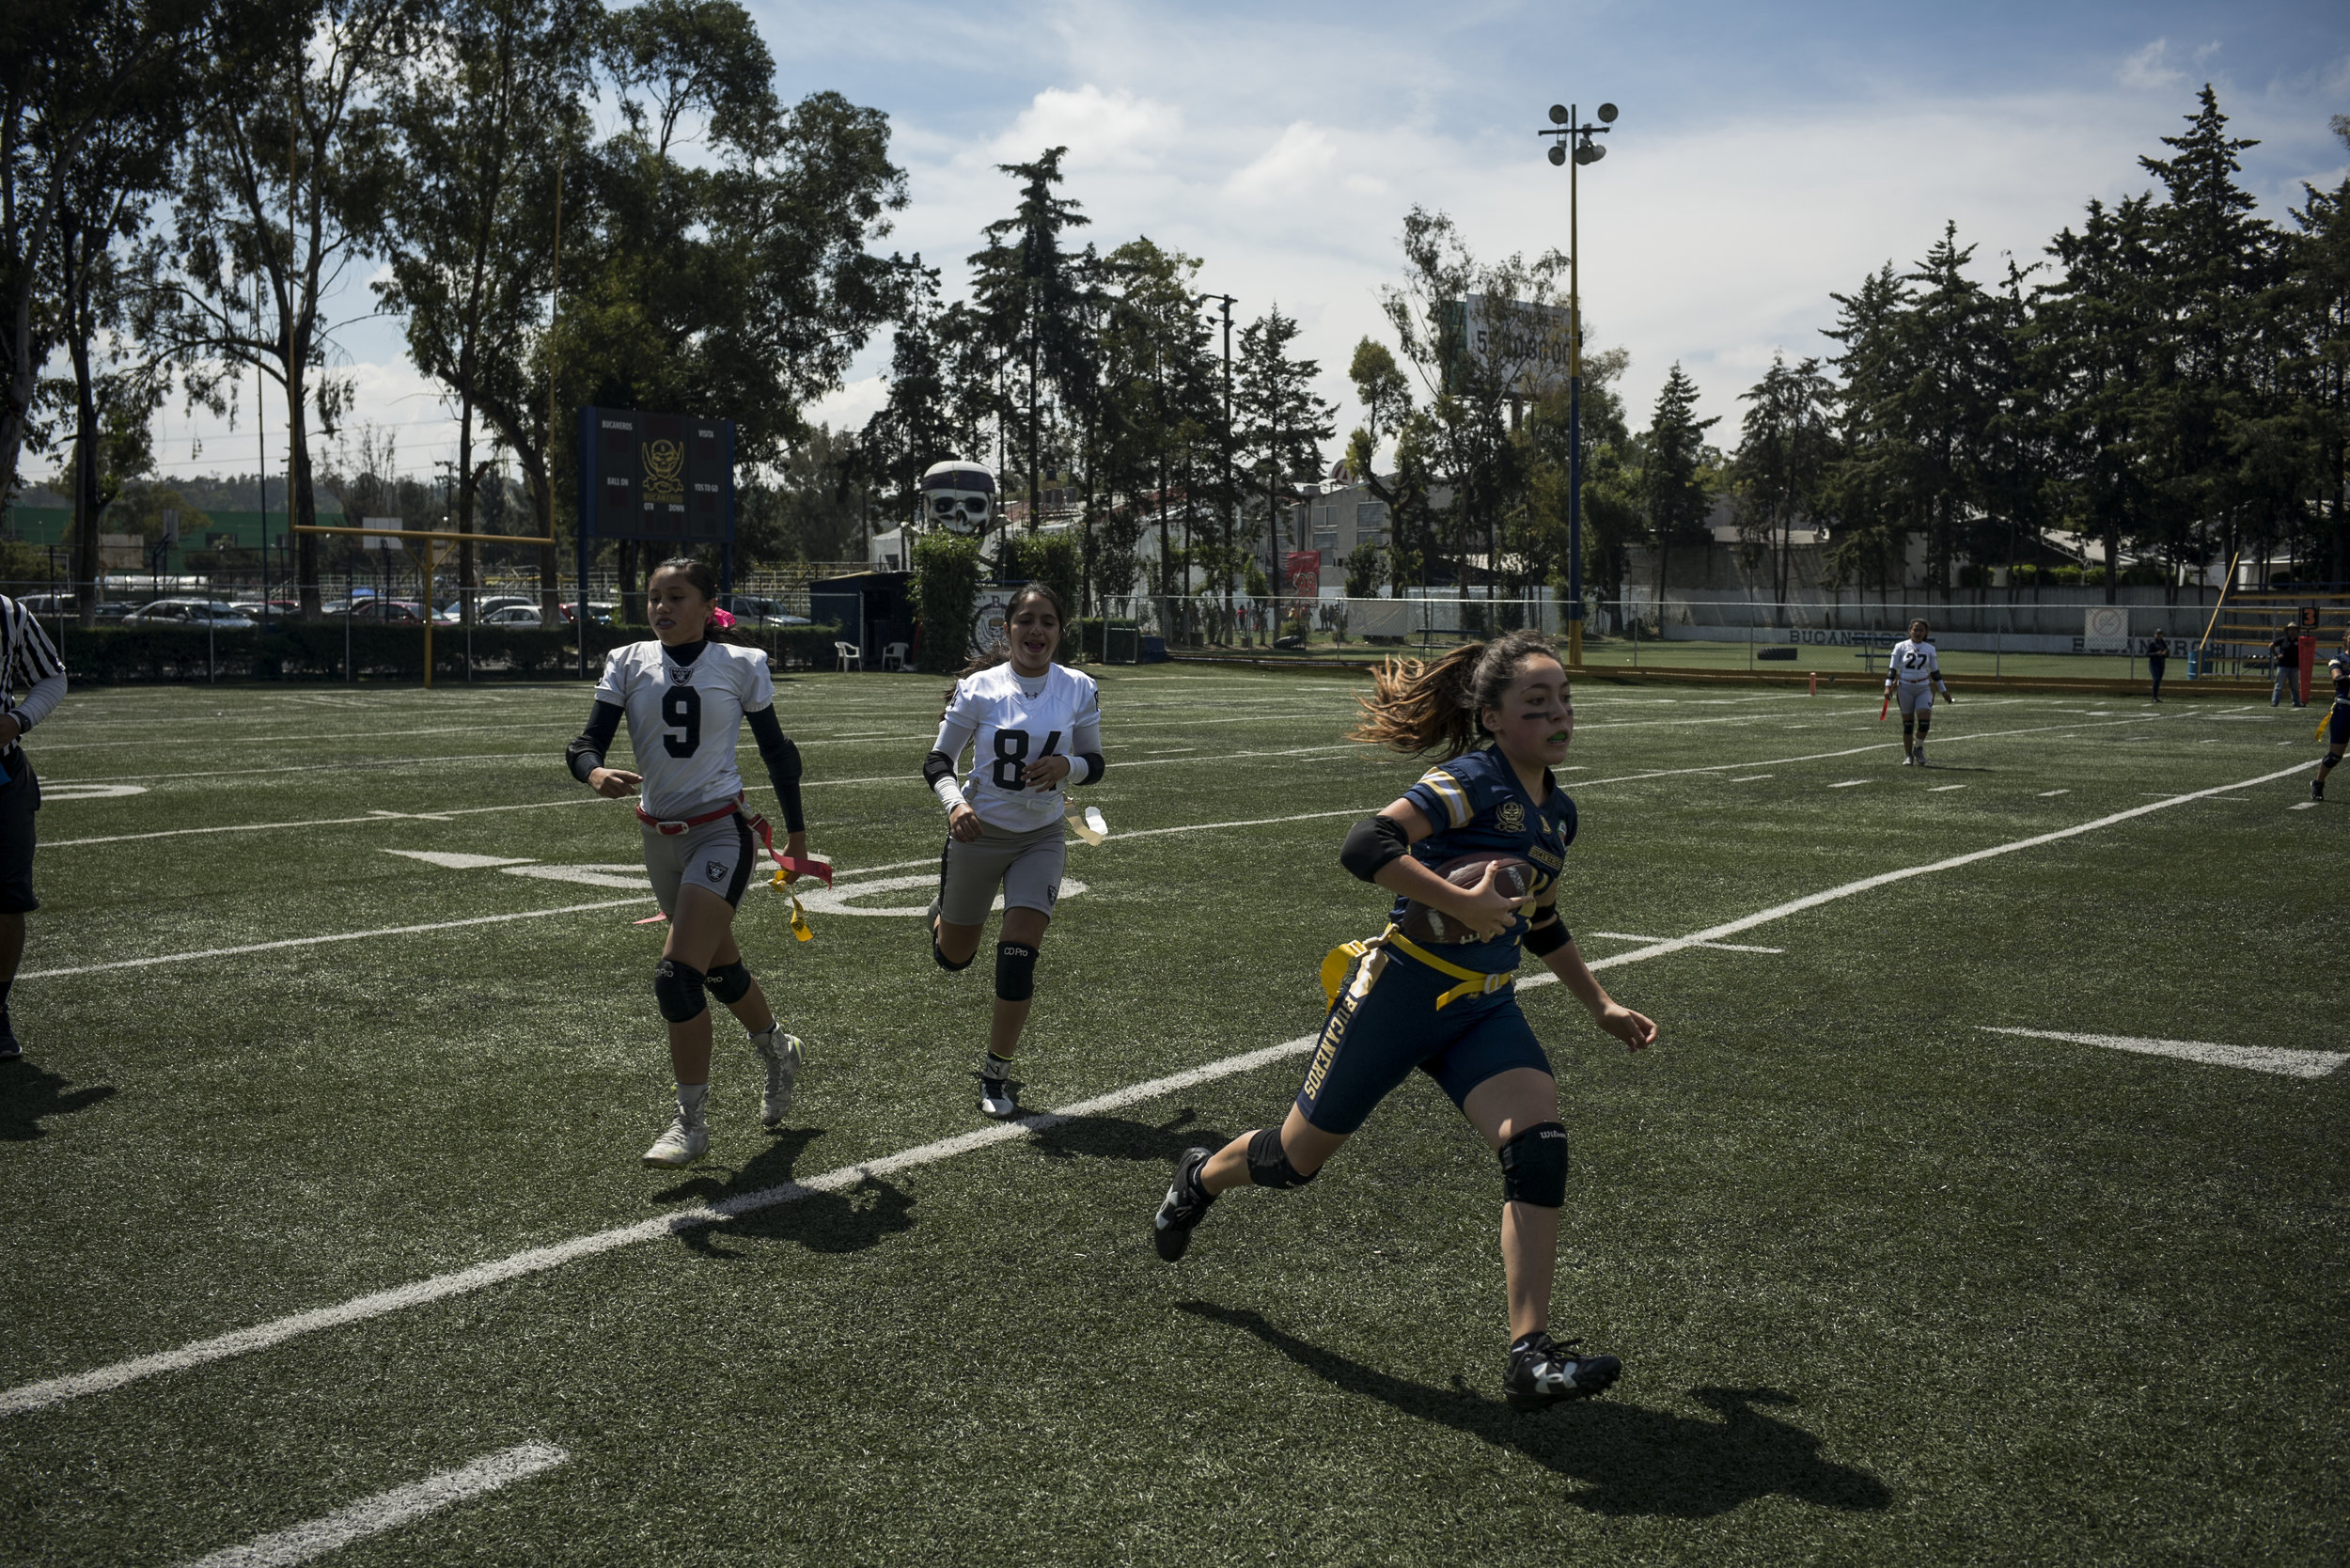 The NFL, which sponsors touchito – Spanglish for touch football – estimates that nationwide 2.5 million boys and girls play the sport. The NFL's business and viewership, meanwhile, has been grown 300 per cent in recent years.